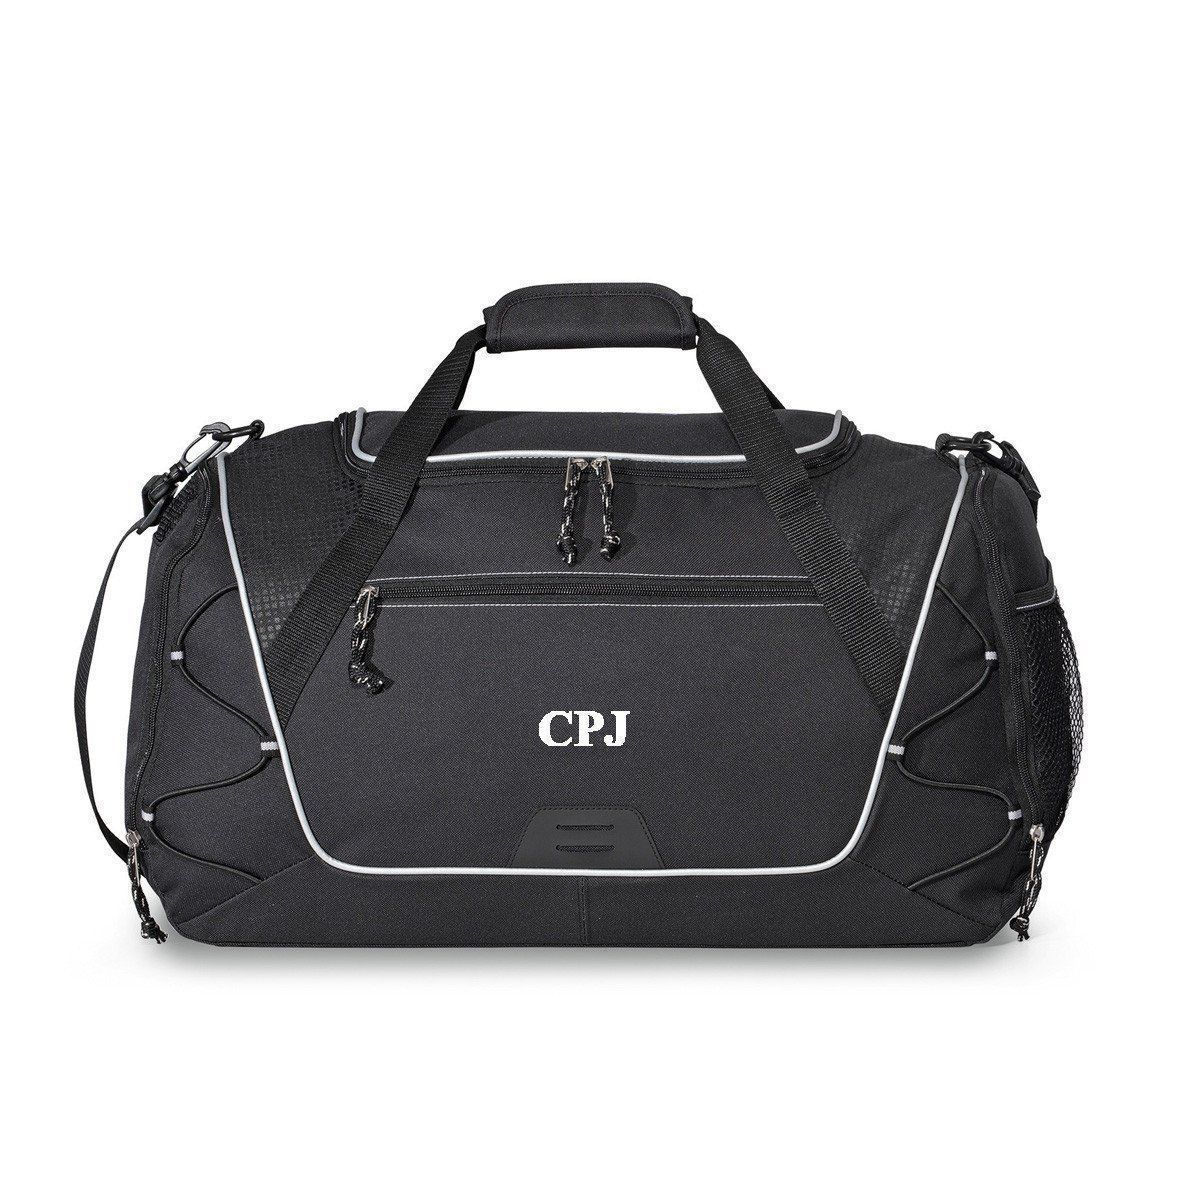 Personalized-Sports-Weekender-Duffel-and-Gym-Bag